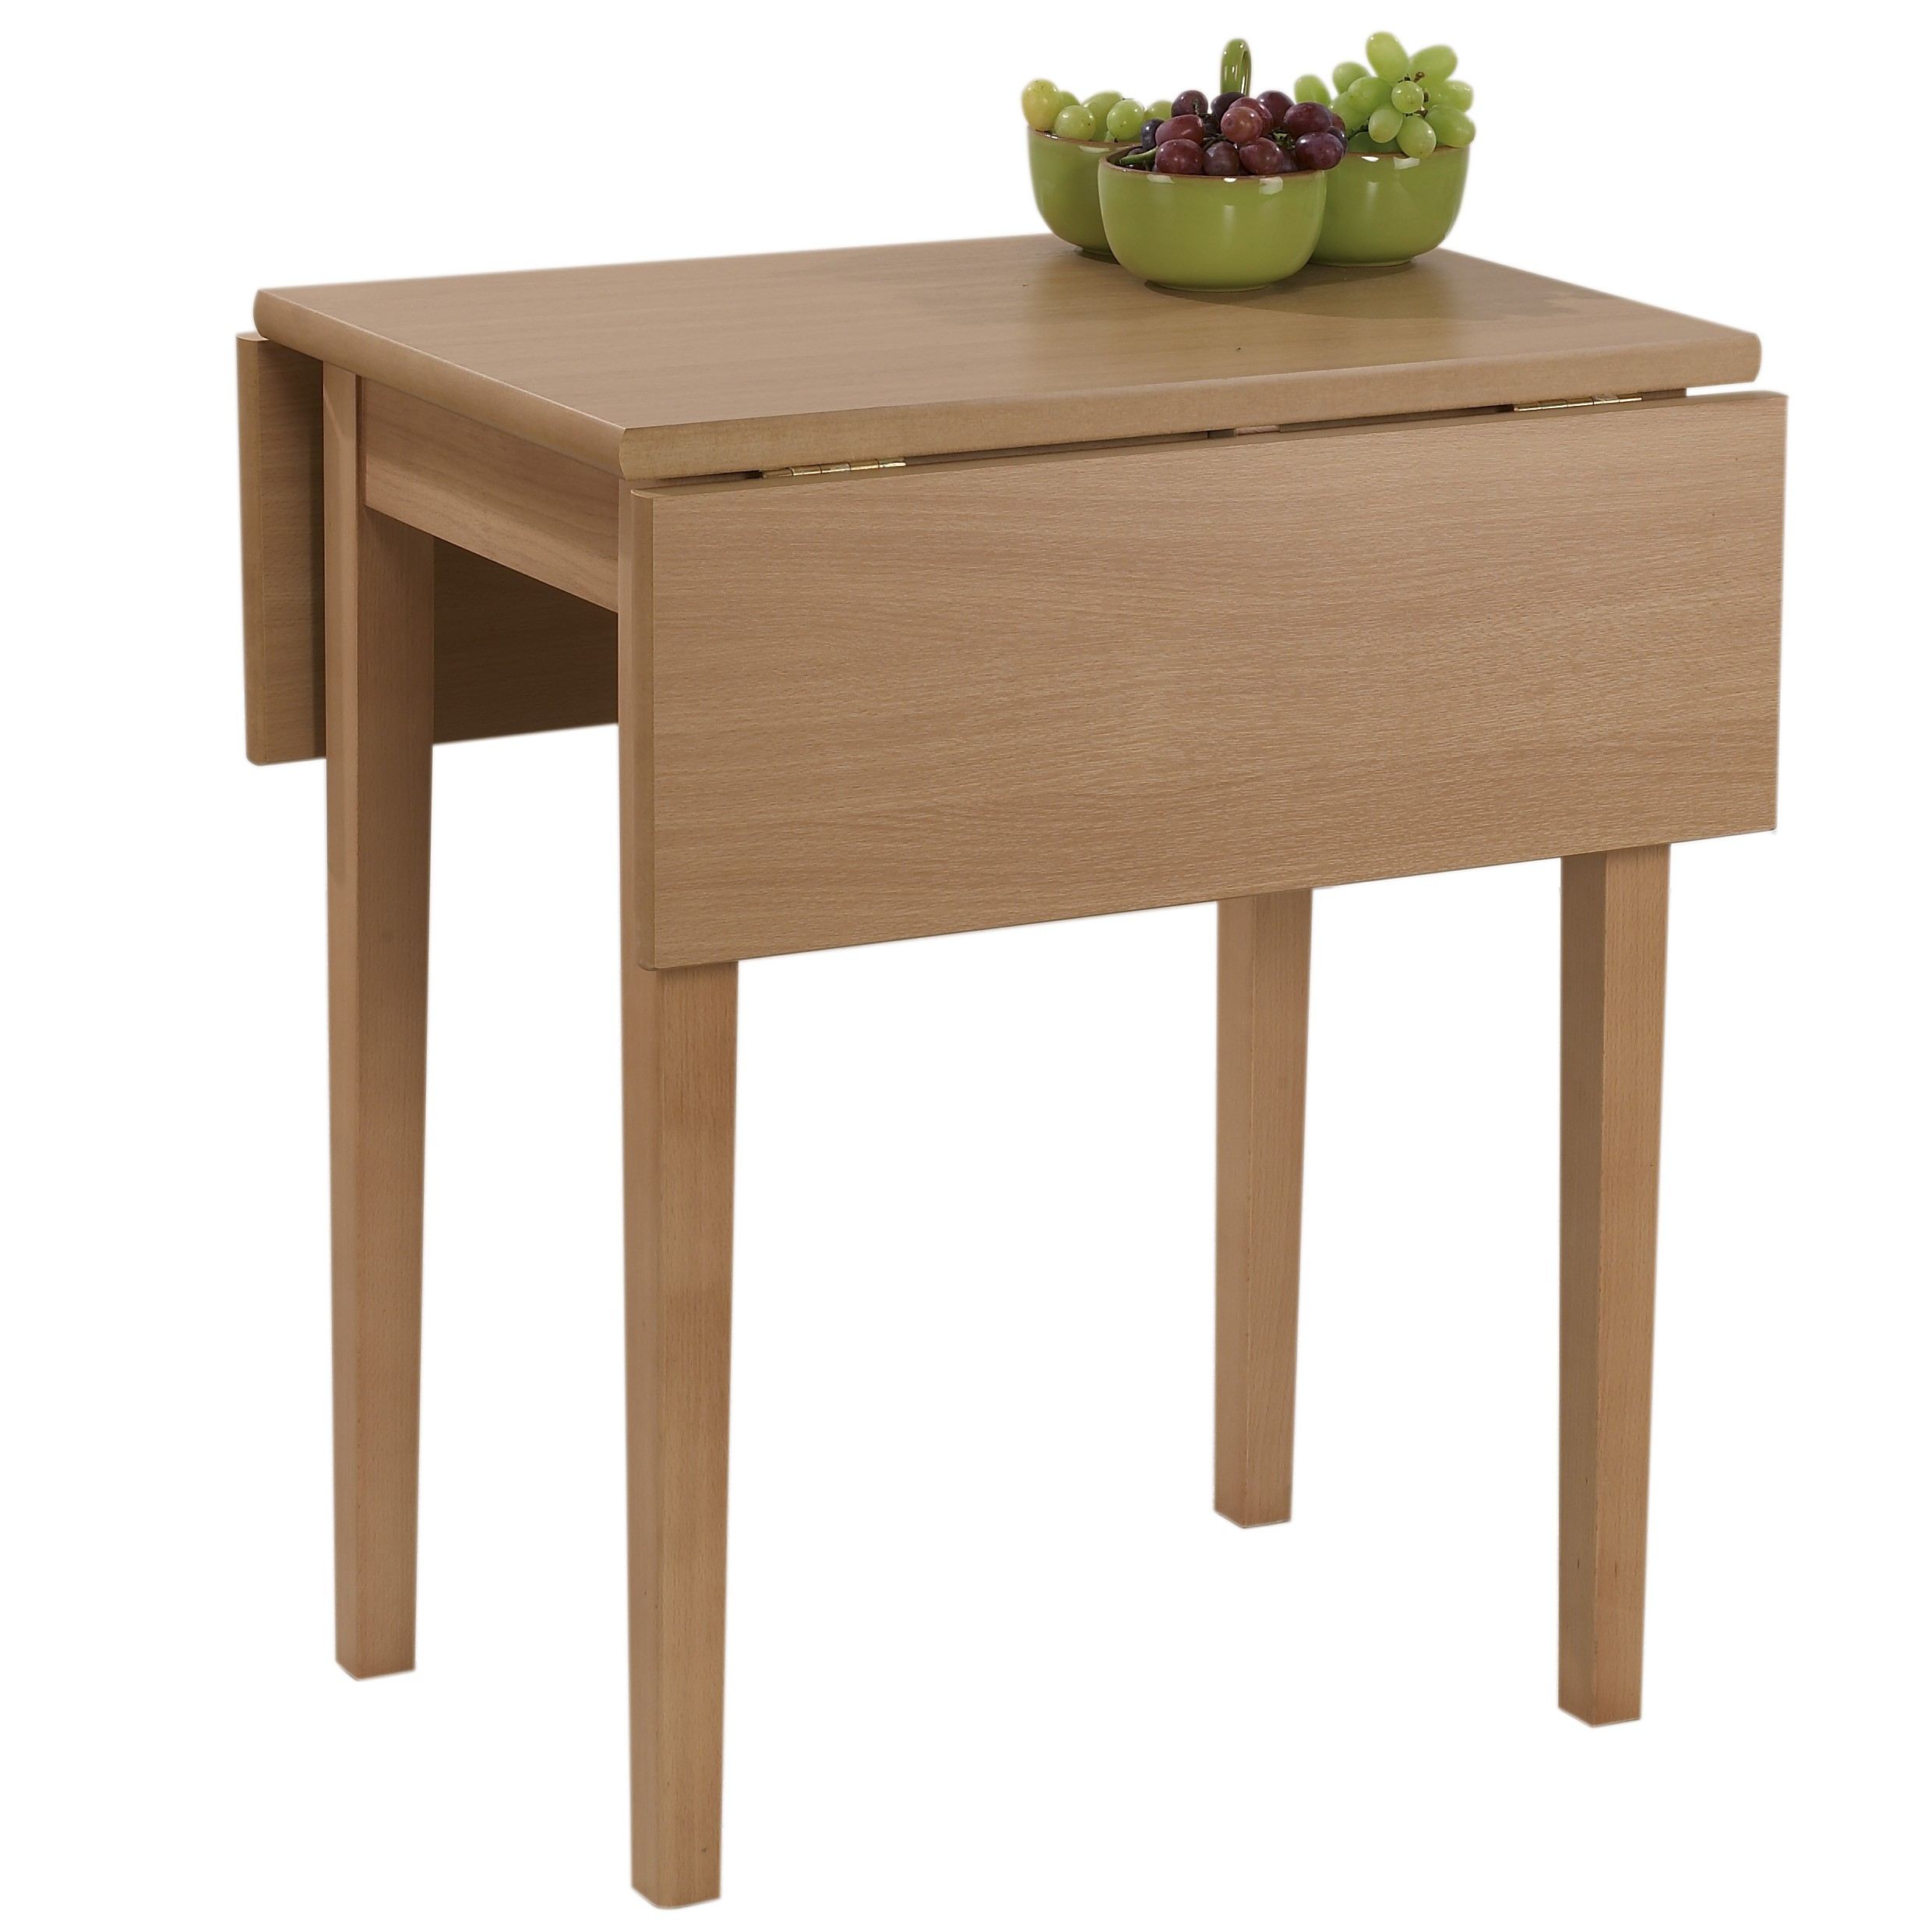 Drop leaf tables for small spaces homesfeed for Small dining table with leaf